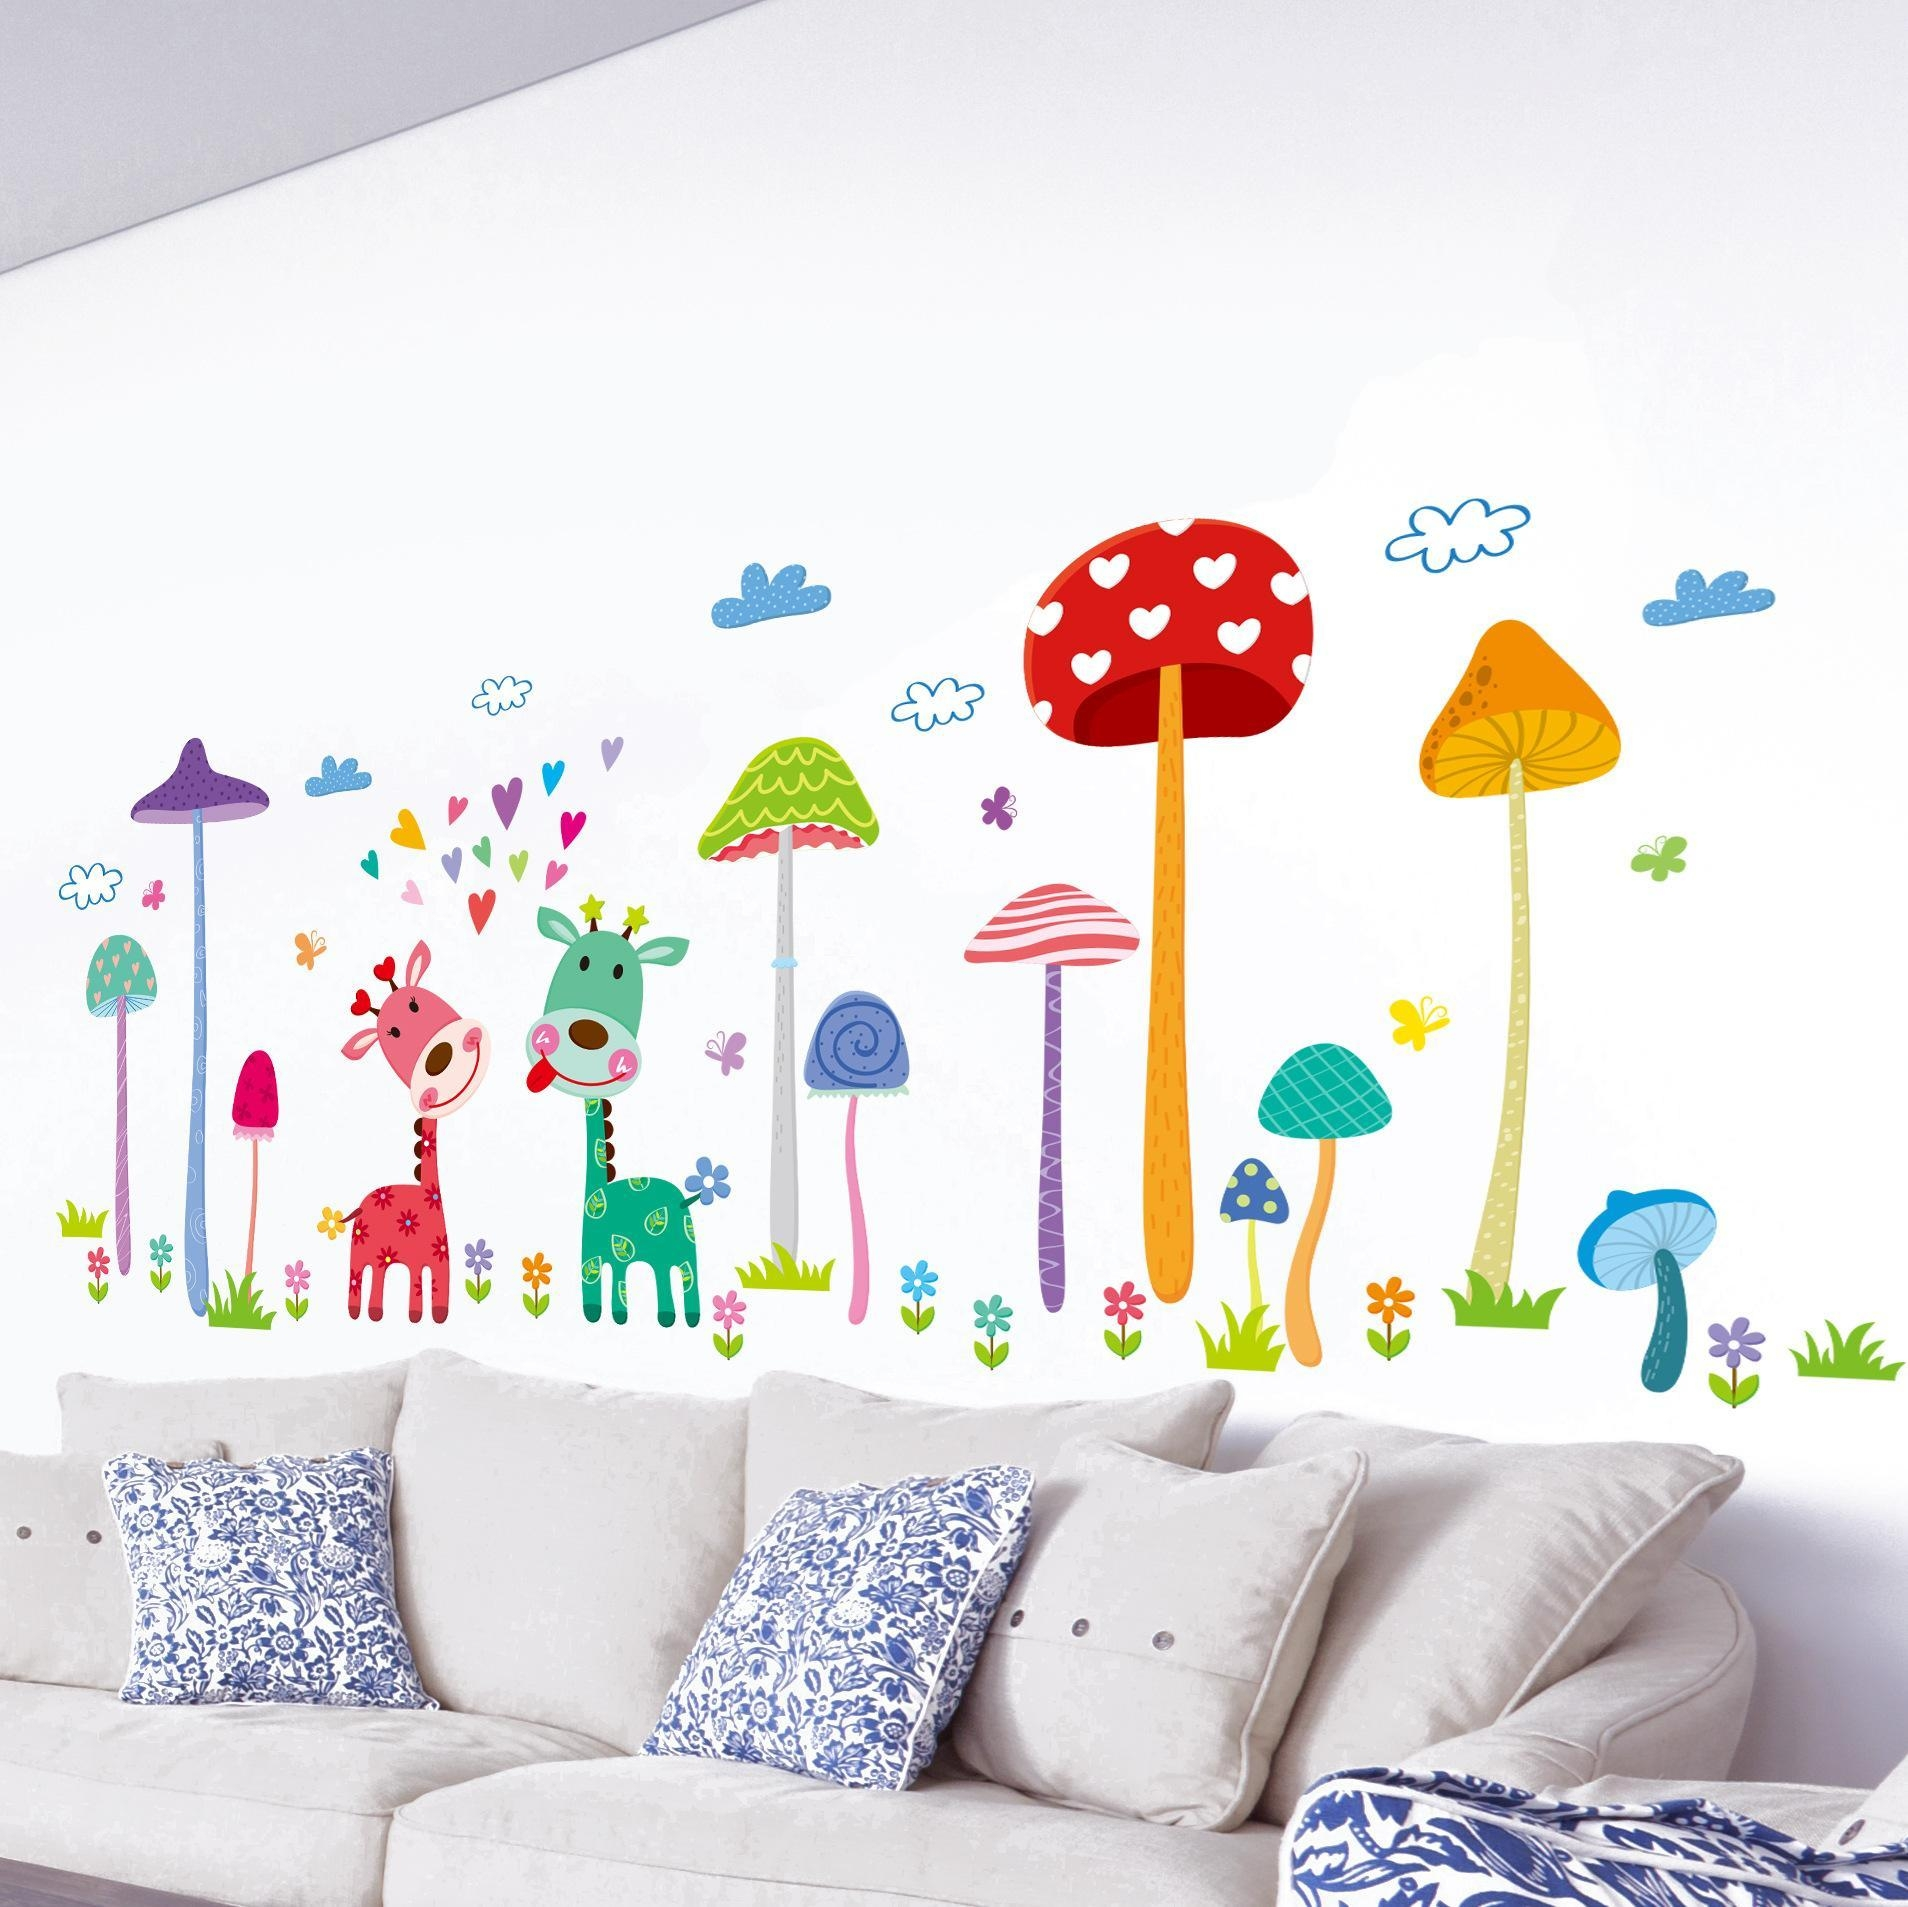 Classroom Wall Design Ideas ~ Choices of wall art for kindergarten classroom